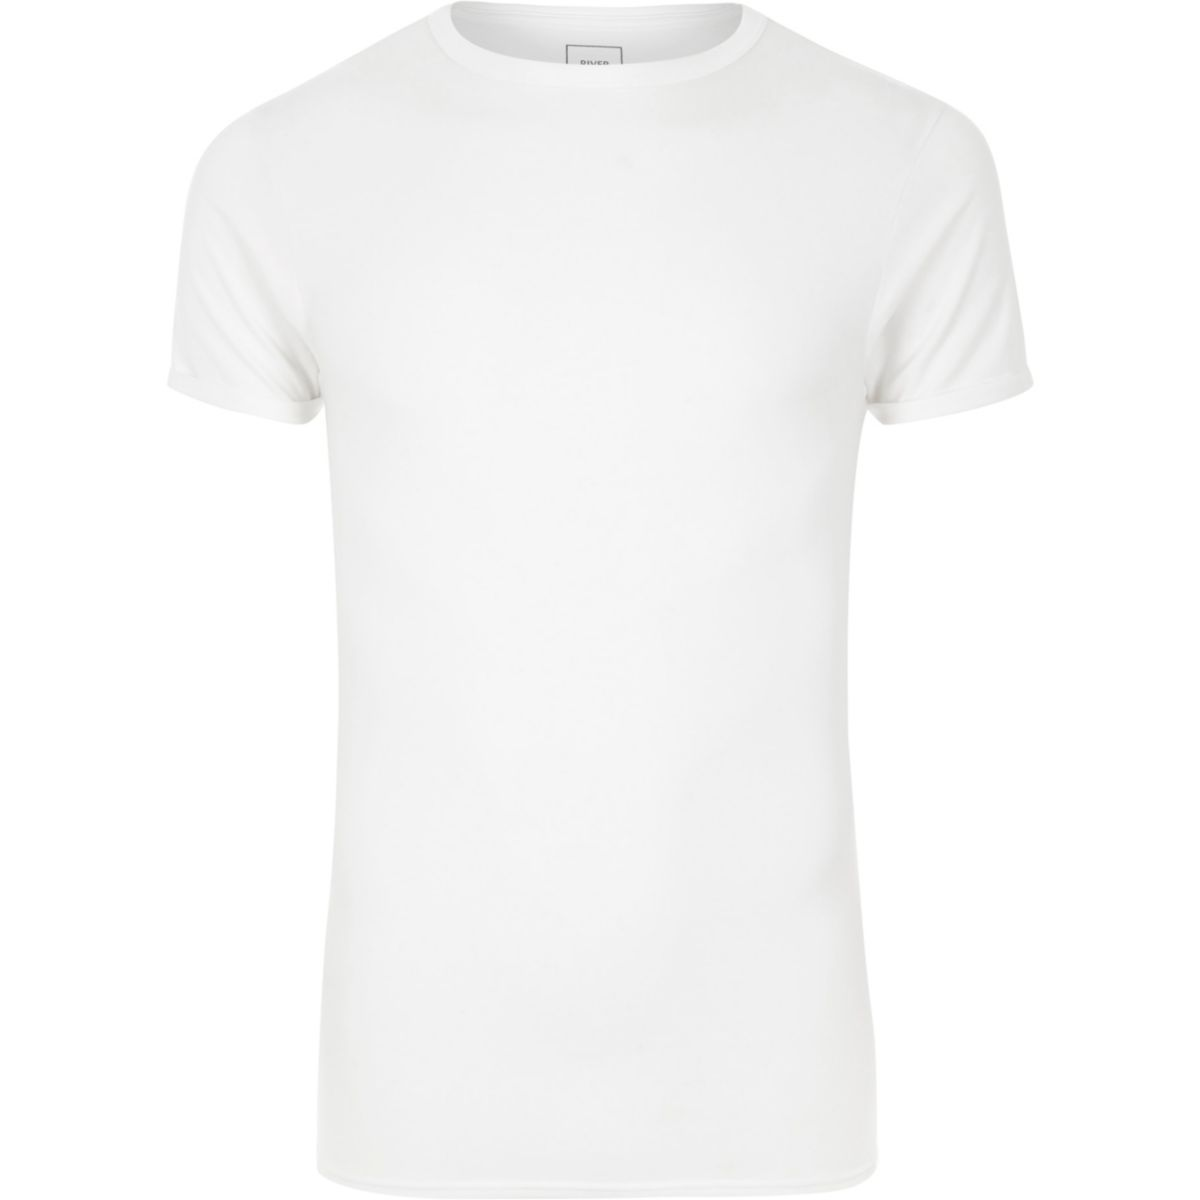 White extreme muscle fit T-shirt